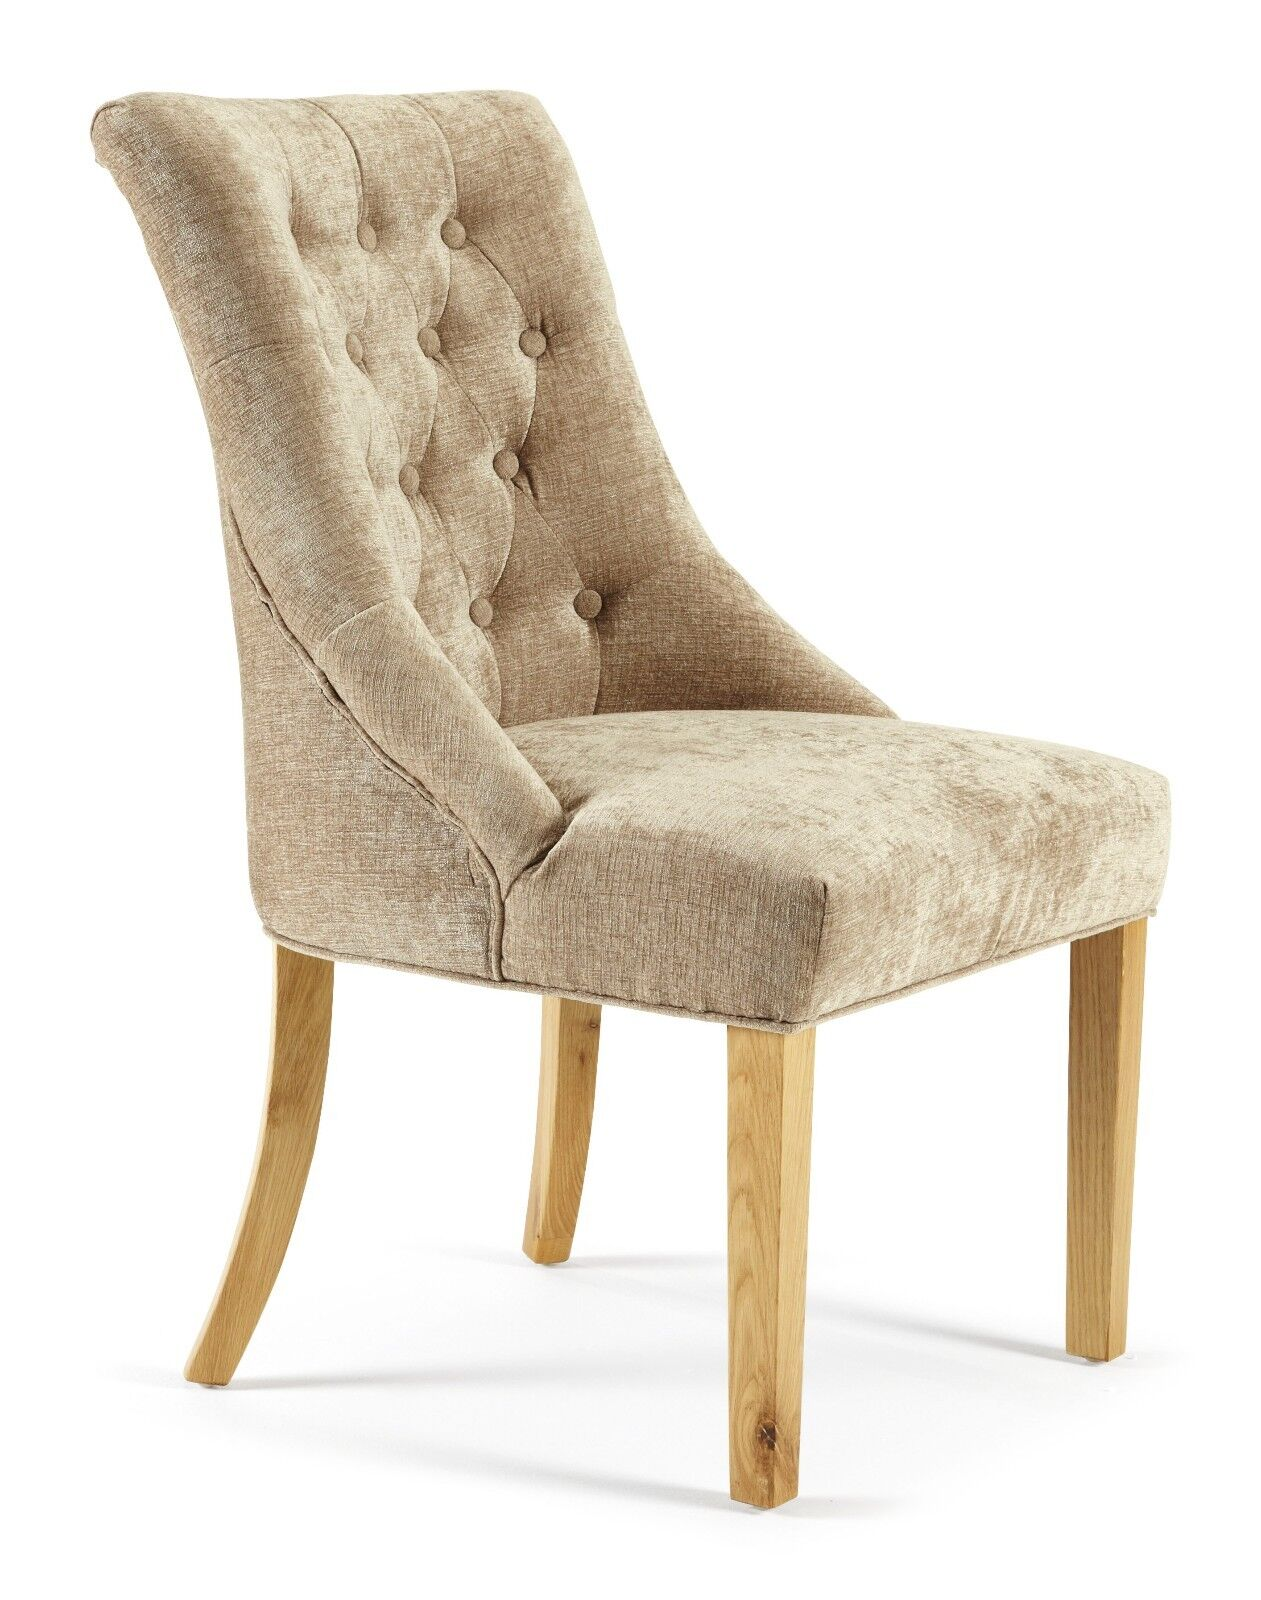 Hoxton Premium 2 Fabric Dining Chairs Pair Chesterfield Style